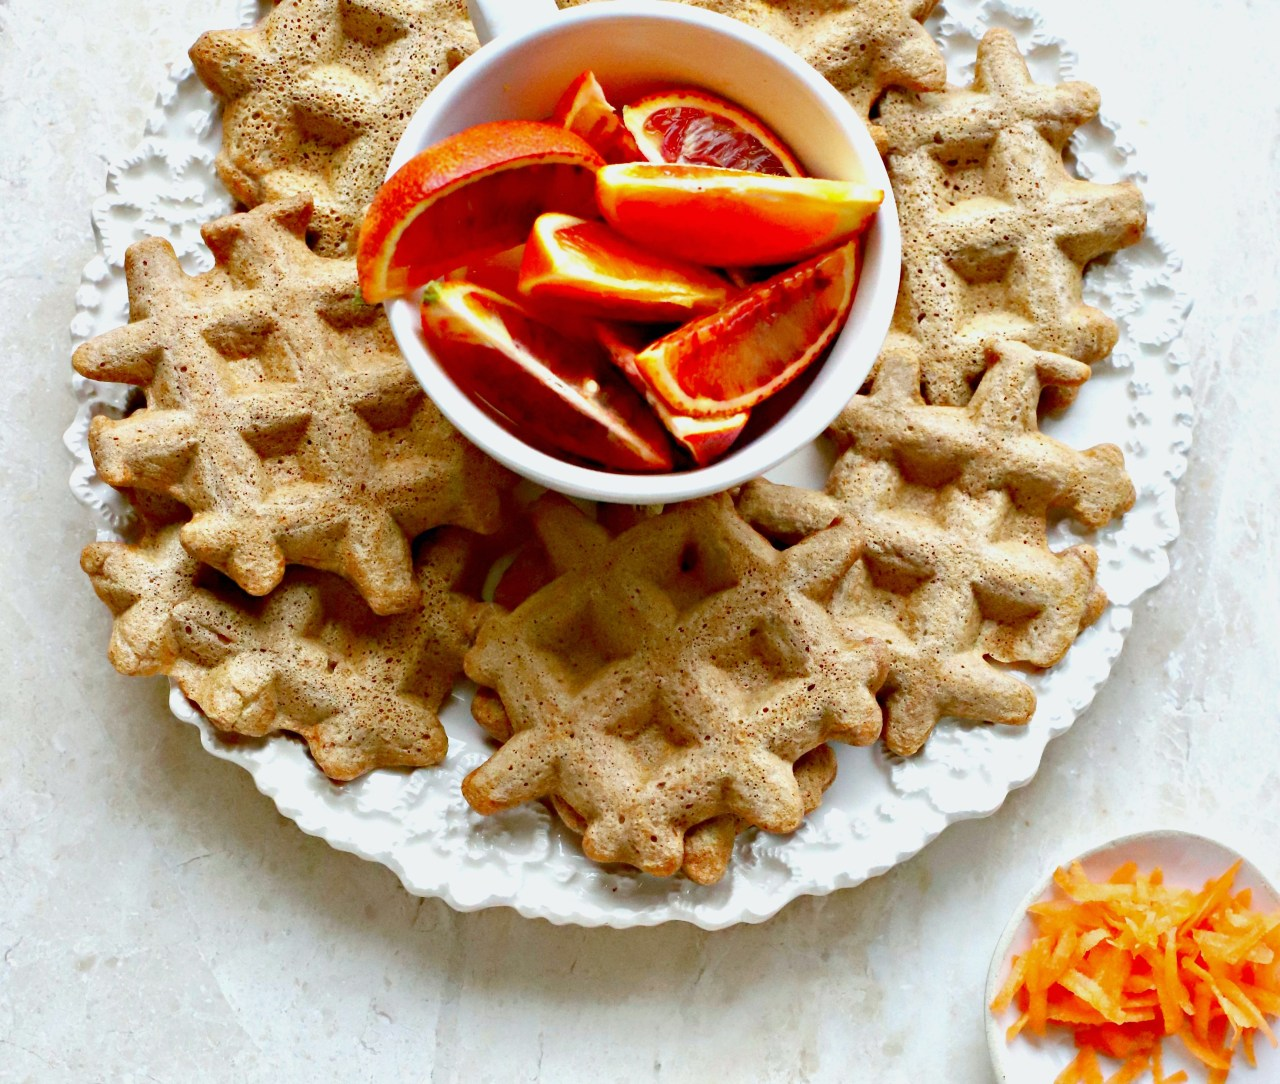 Homemade carrot cake waffles for weekend making and weekday toasting. Drizzle over brown butter and cardamom syrup for an easy touch of luxury. #waffles #carrots #breakfast #easyrecipe #wholegrain